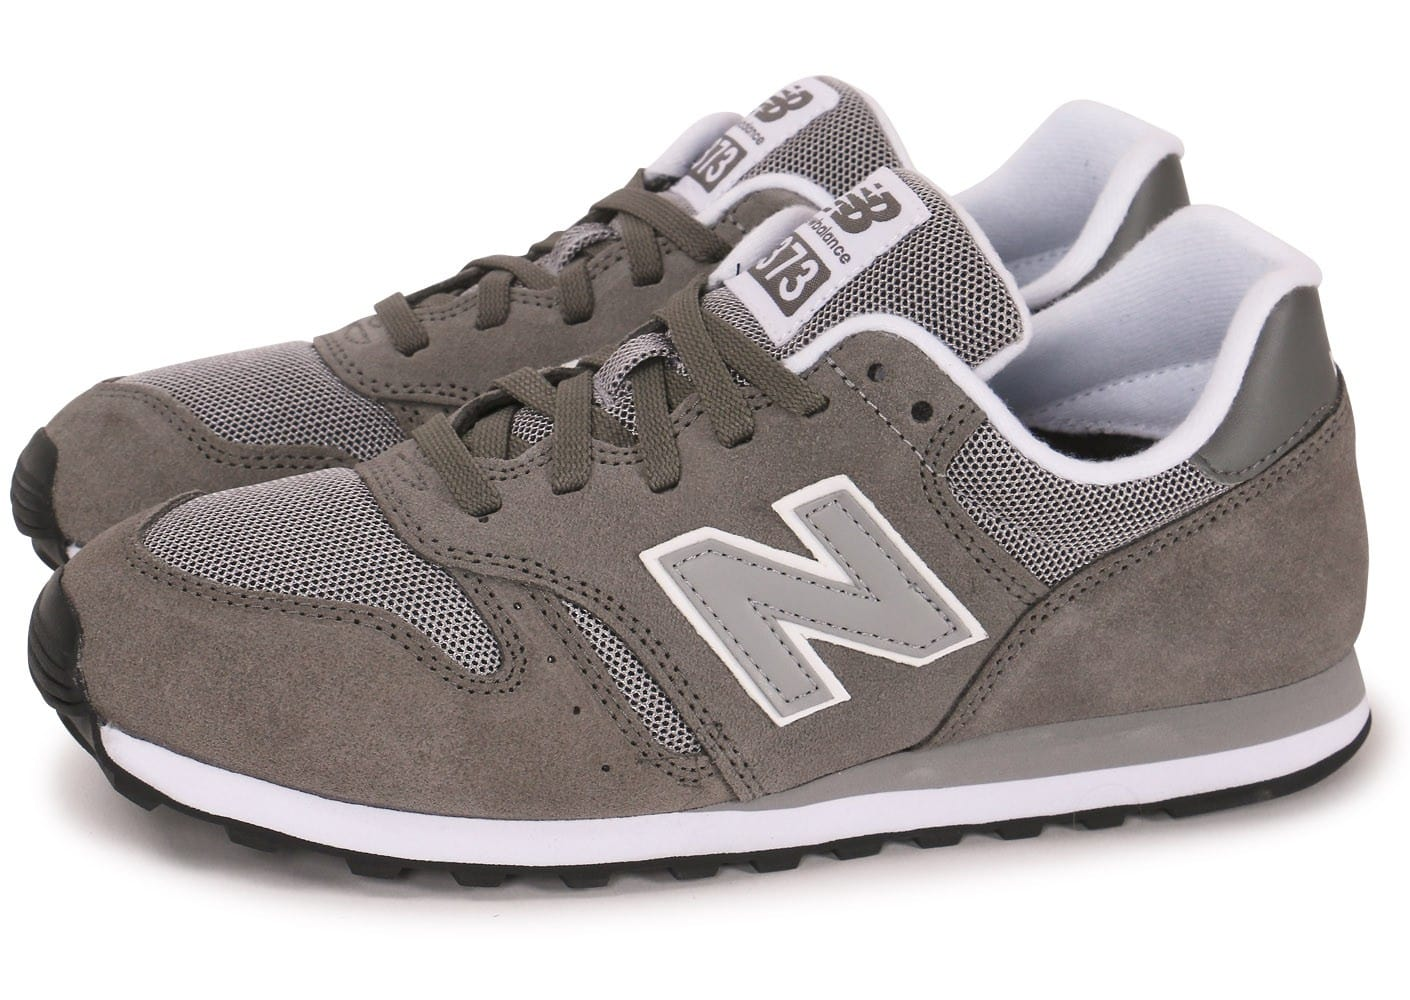 new balance ml373 grise chaussures homme chausport. Black Bedroom Furniture Sets. Home Design Ideas